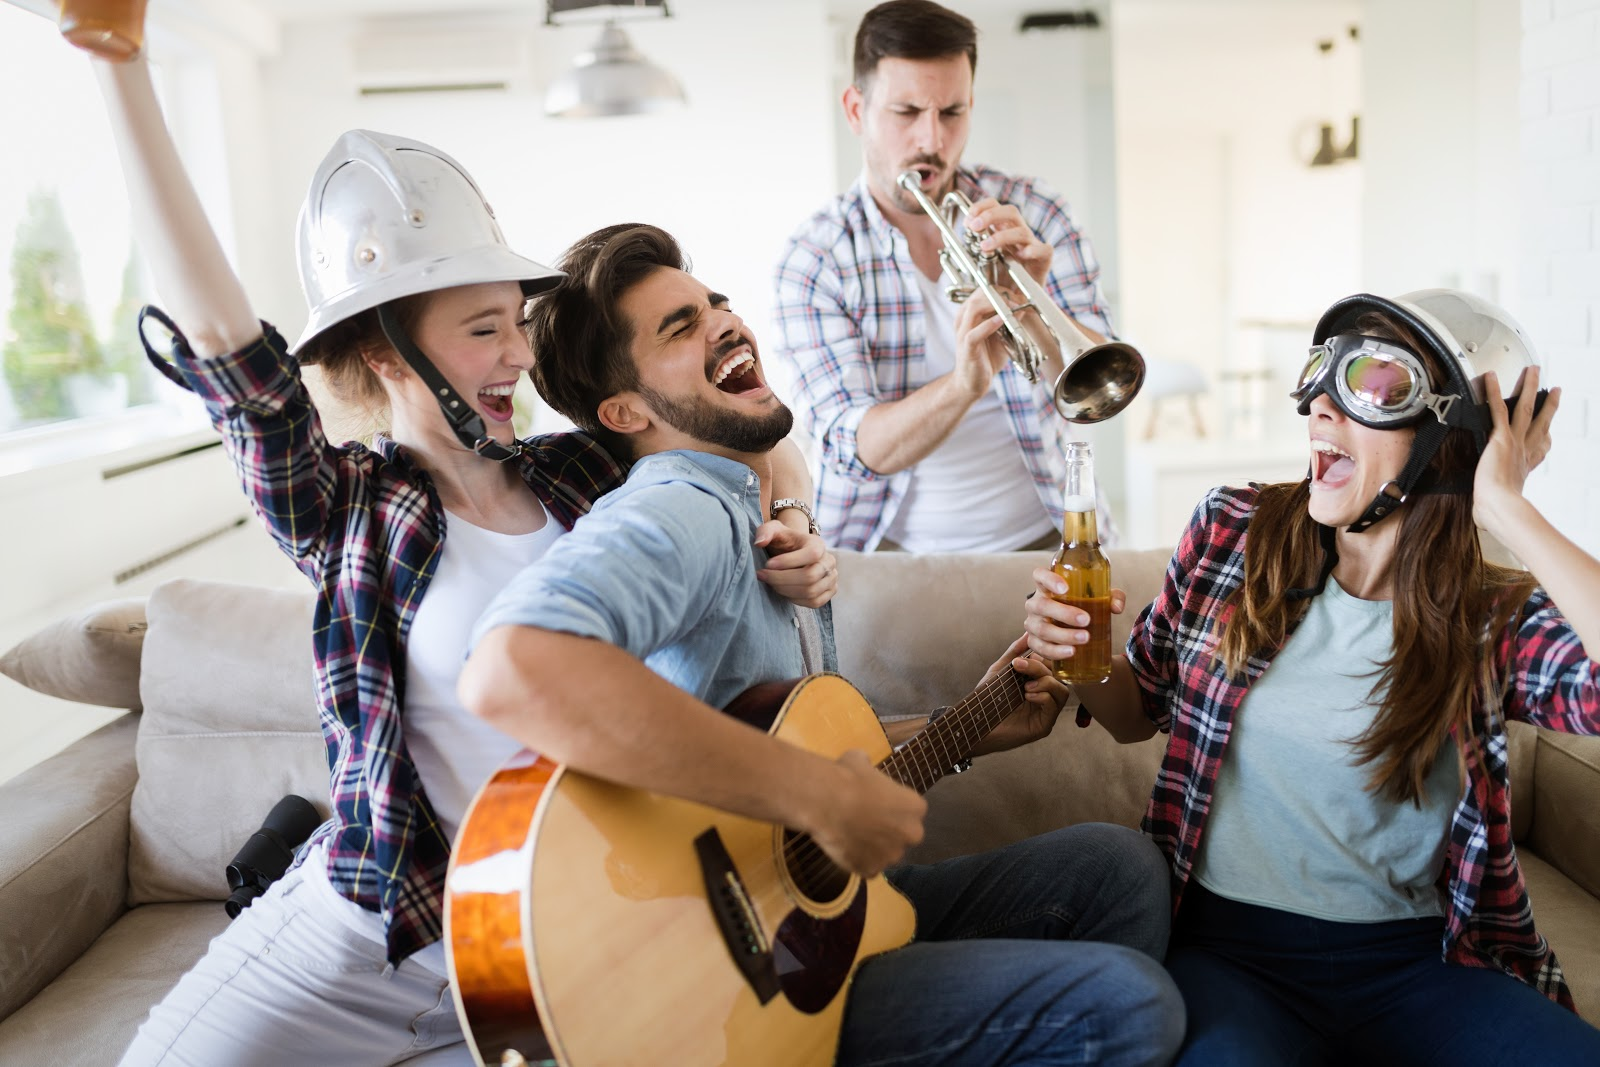 A group of people playing music, drinking been and laughing